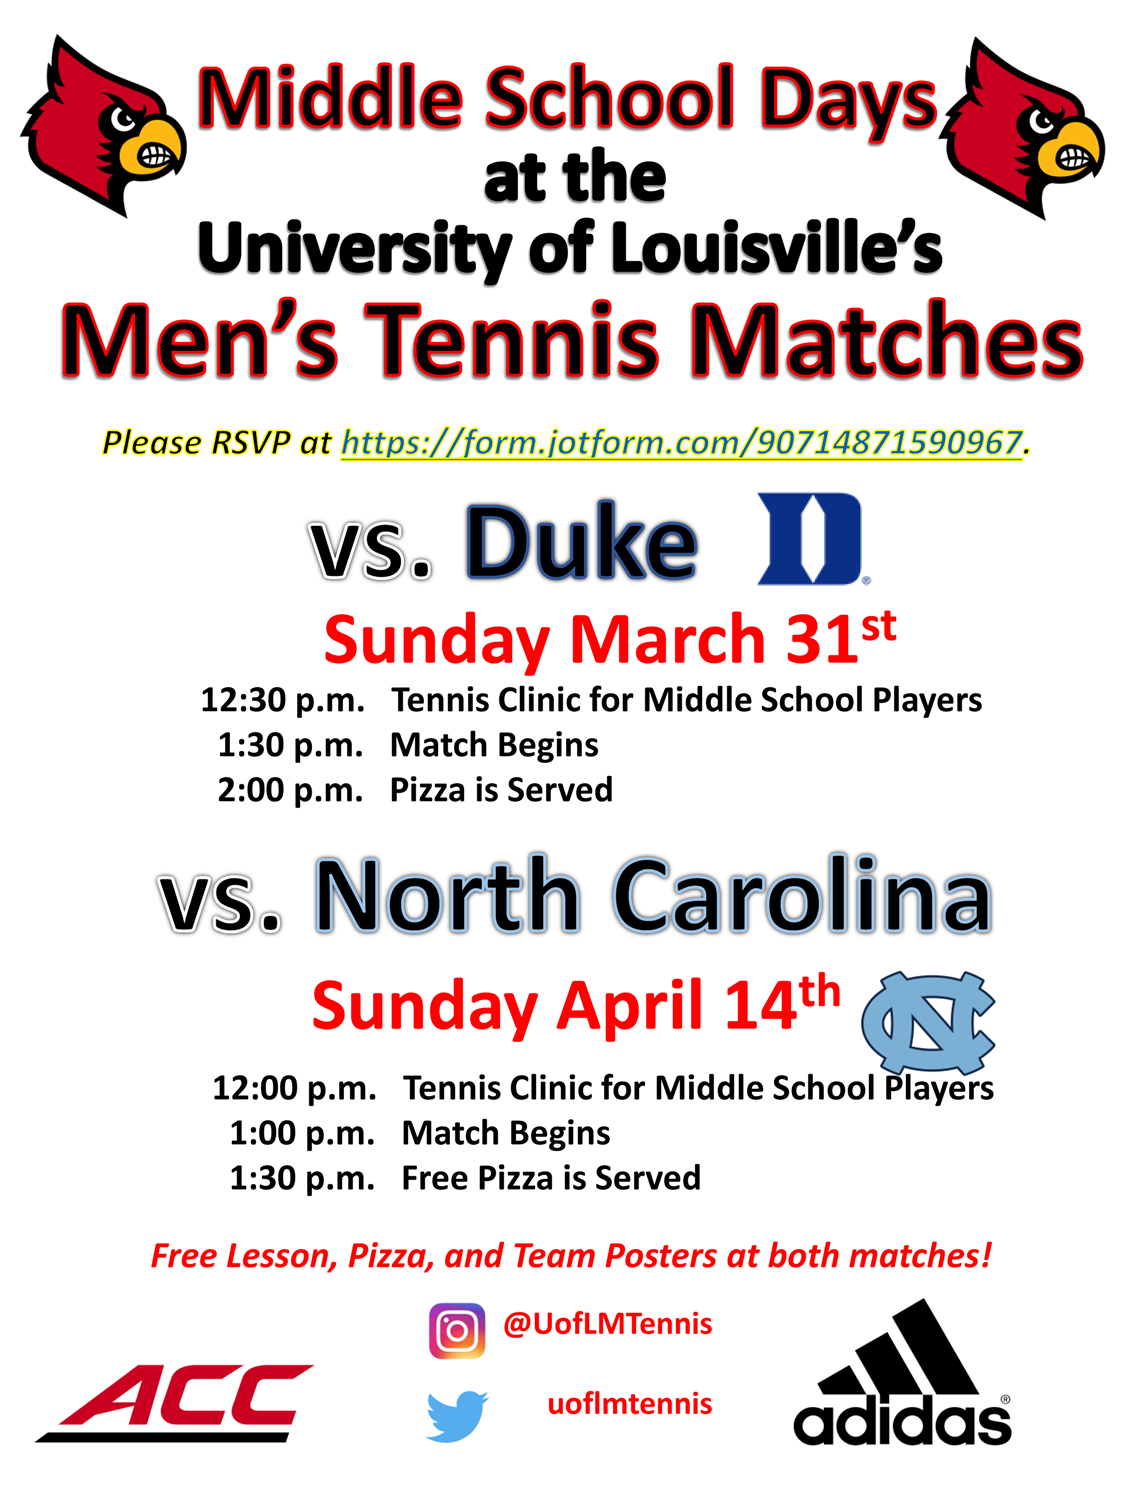 UofL_Mens_Tennis_-_Middle_School_Days_Flyer